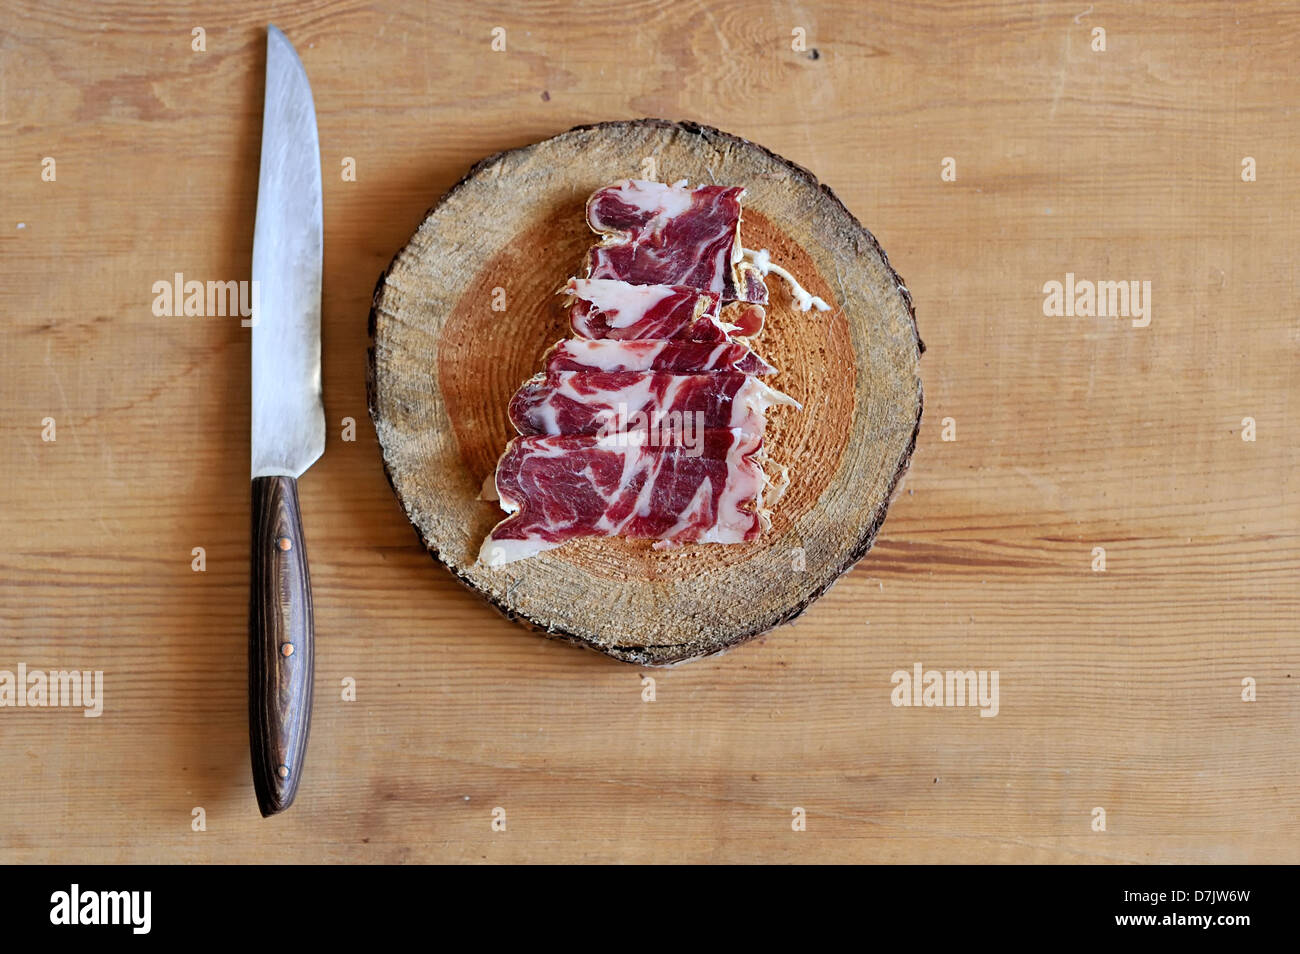 Slices of cured spanish jamon on a wooden cutting board Stock Photo